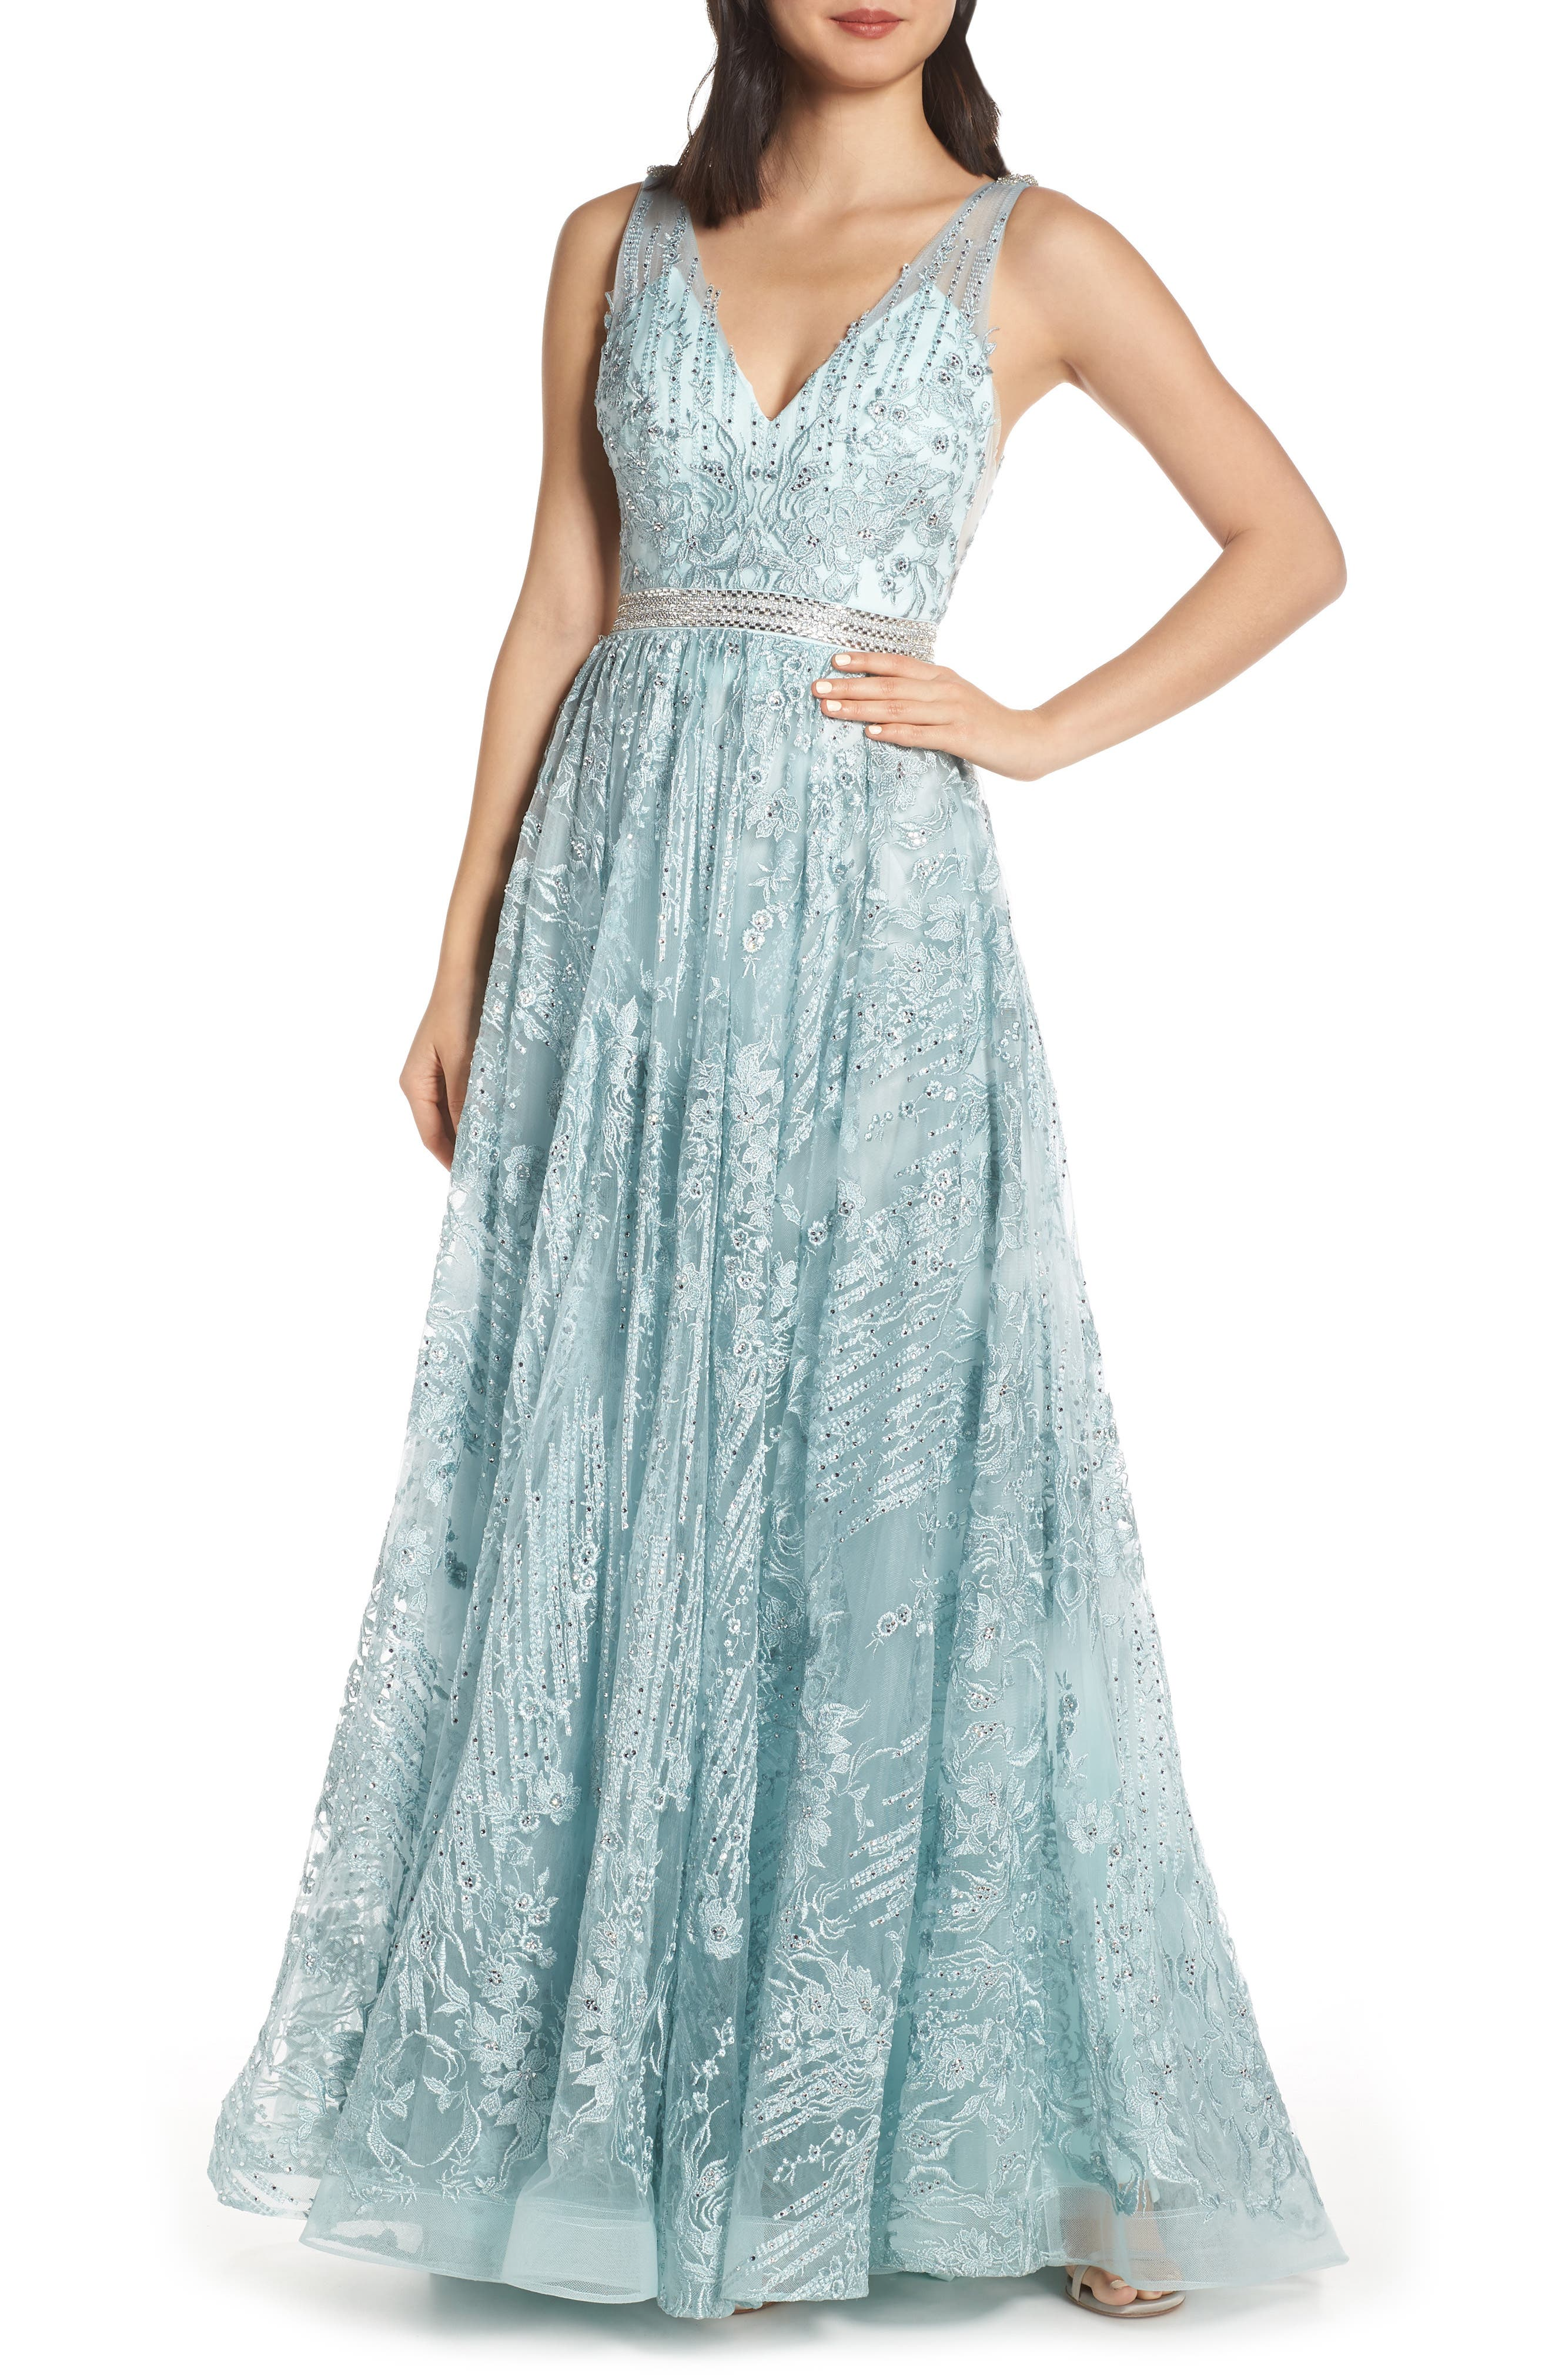 MAC DUGGAL, Beaded & Embroidered Chiffon Evening Dress, Main thumbnail 1, color, SEAMIST